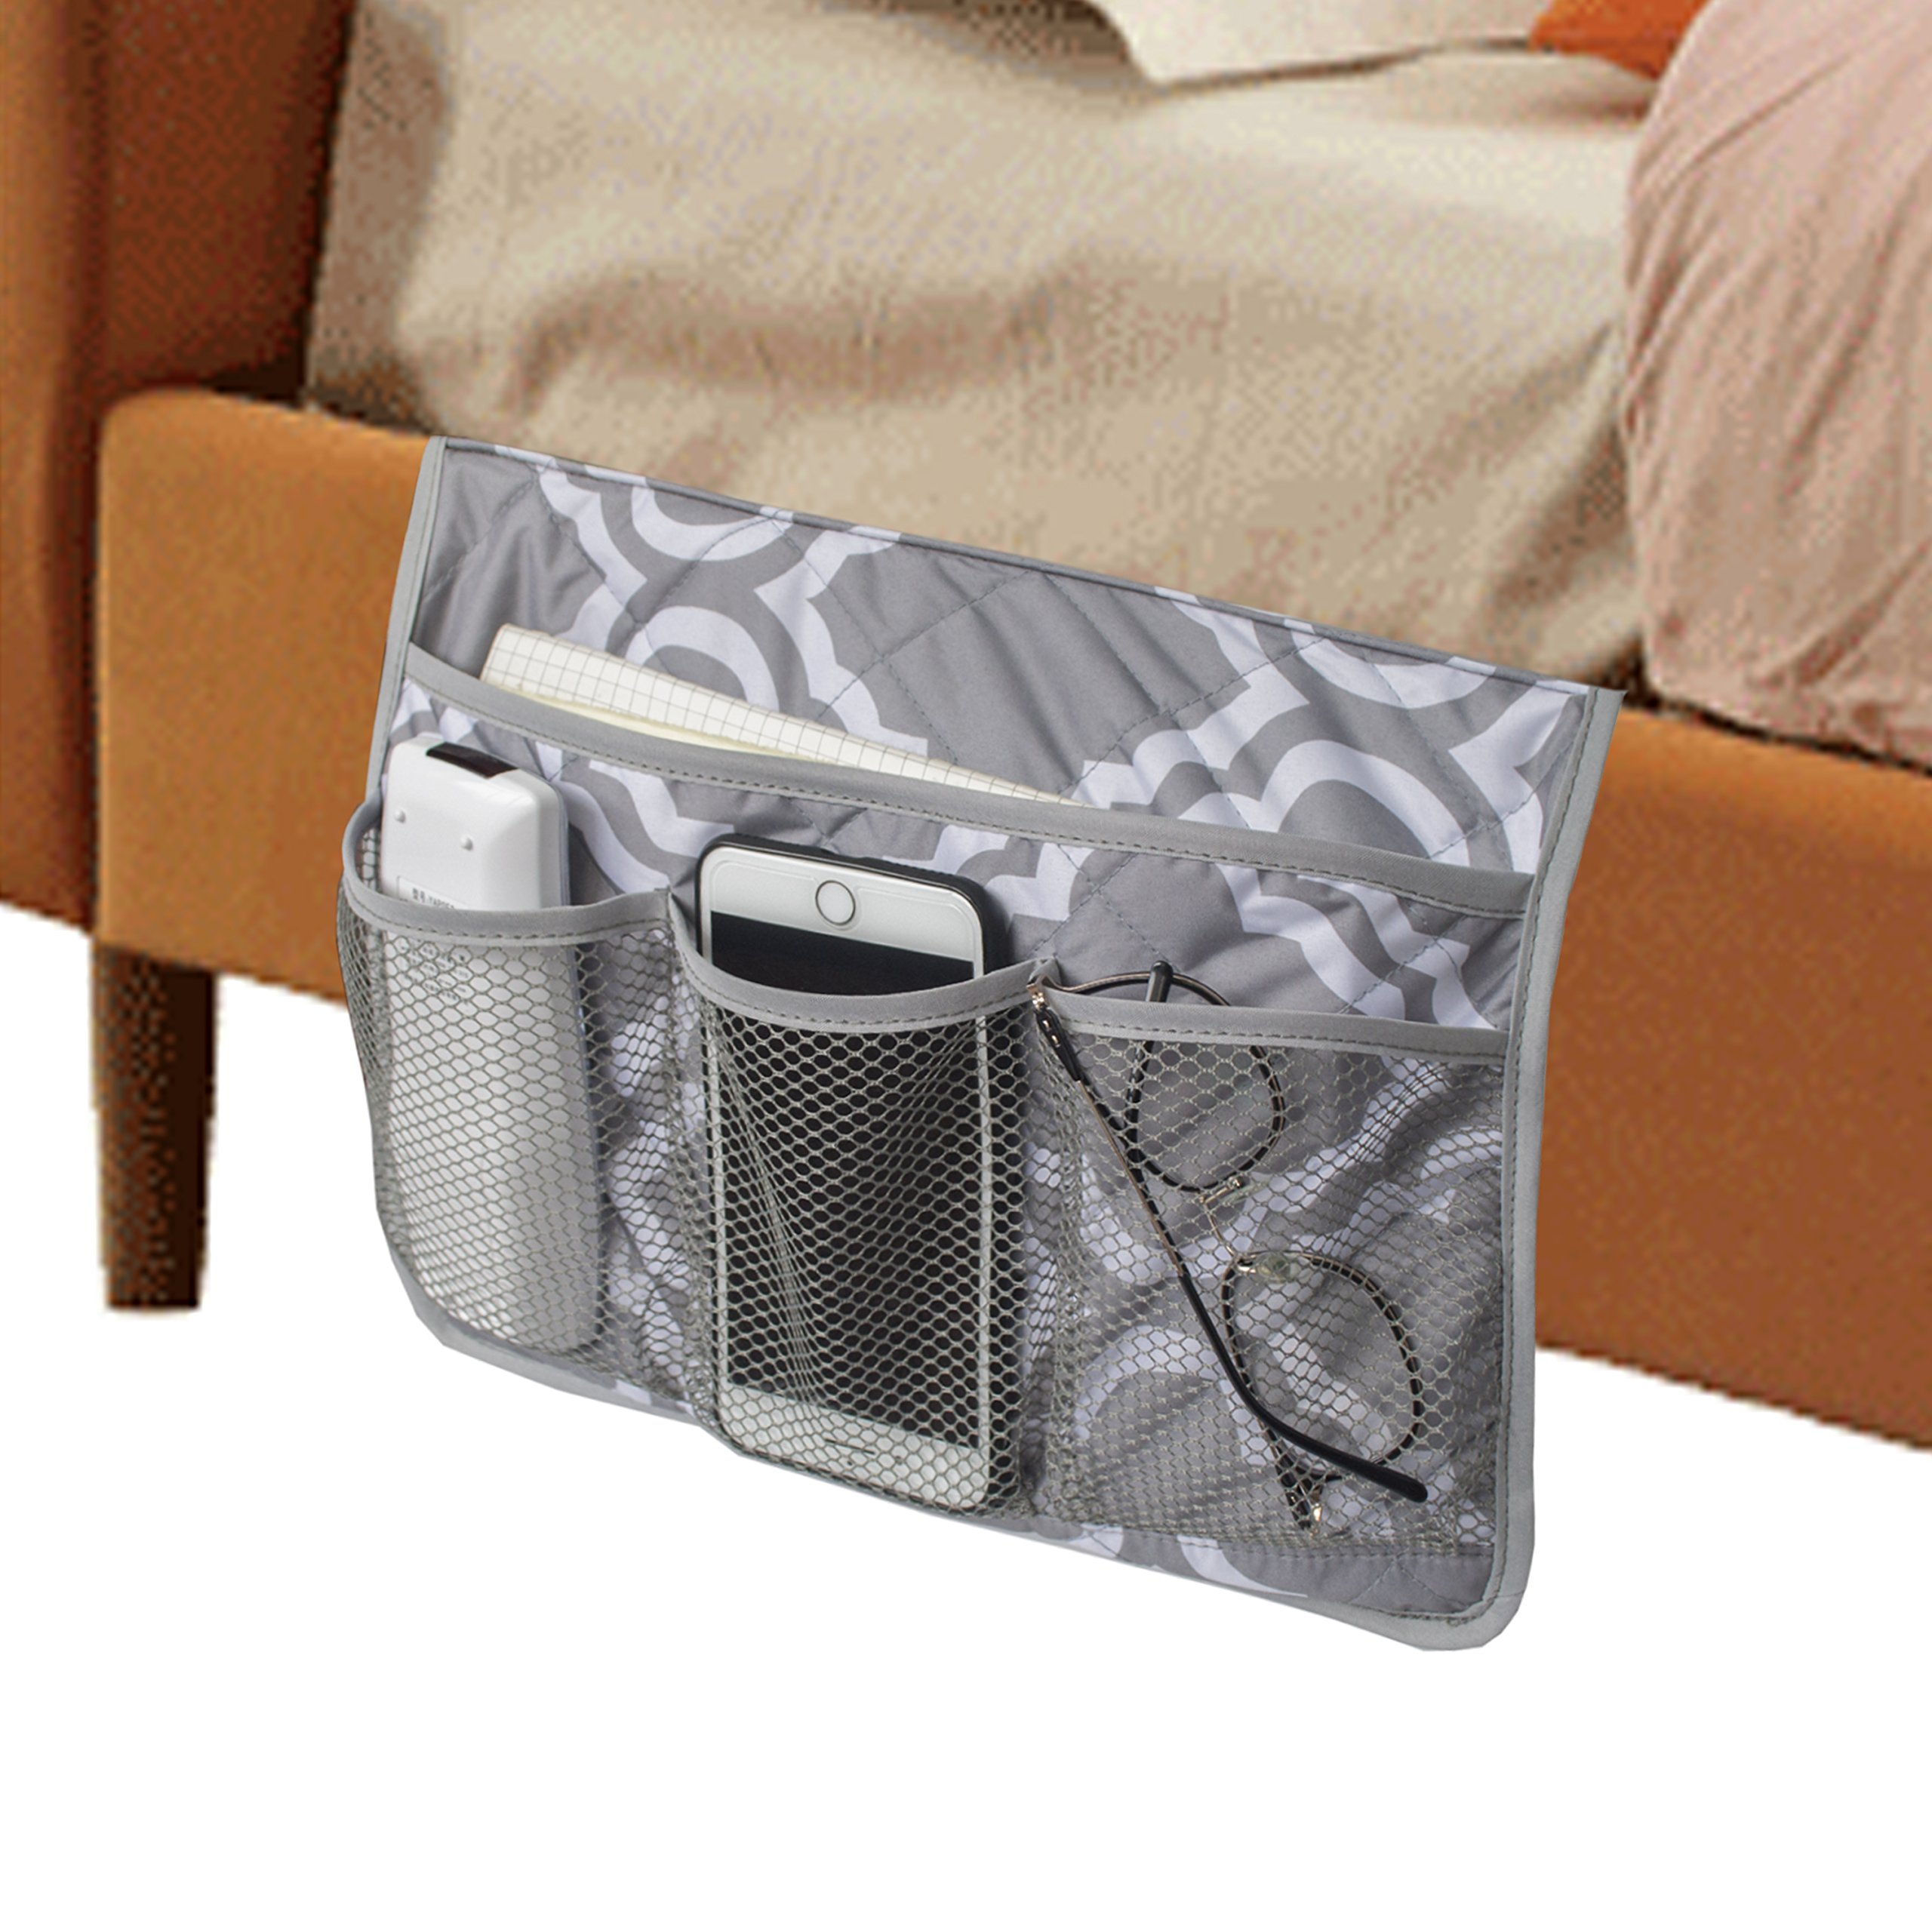 MDSTOP Bedside Caddy, Bedside Storage Bag, Under Couch Table Mattress Organizer, Fits for Book Tablet Magazine Phone Remotes Glasses (Grey) by MDSTOP